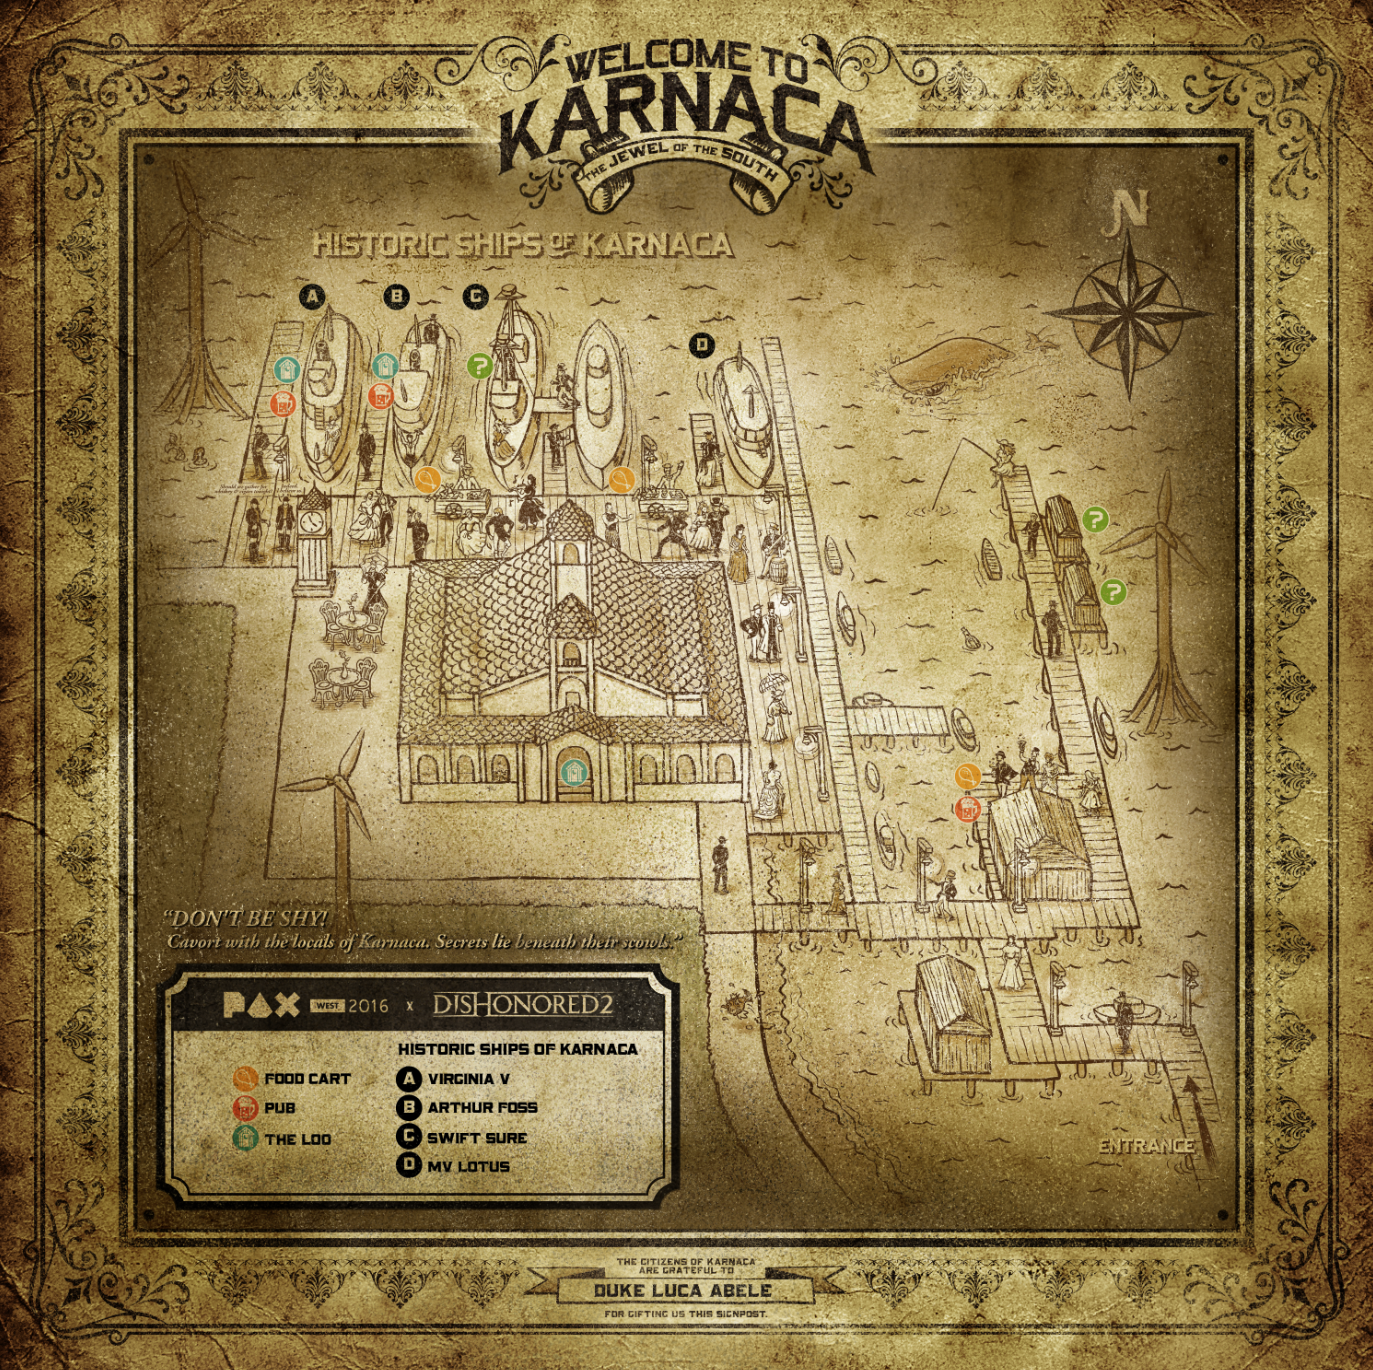 Historic Ships Of Karnaca Pax West 2016 Artwork Dishonored